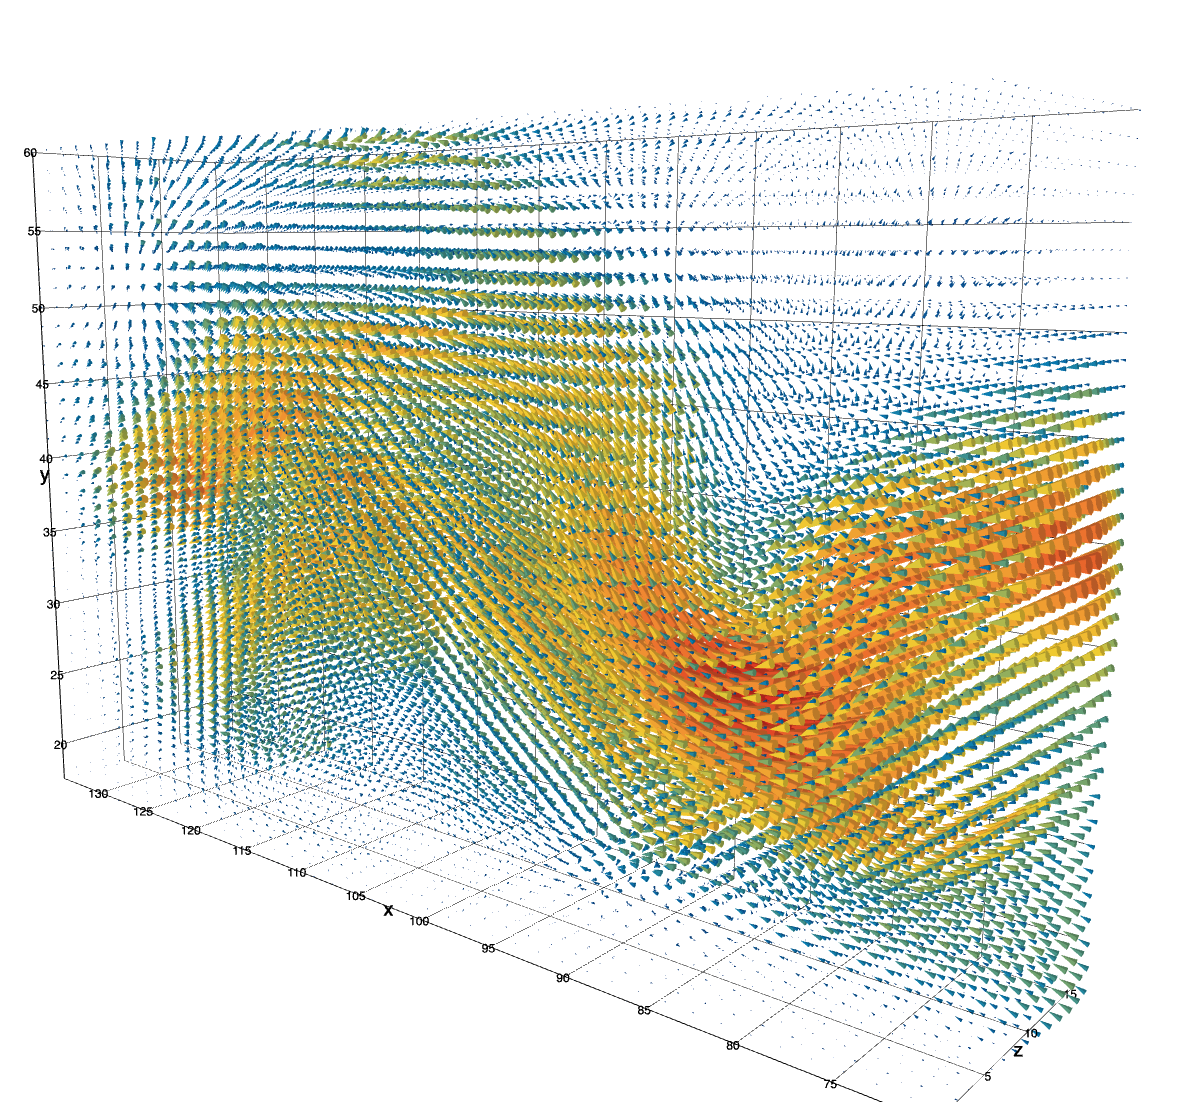 3D Support for Streamline/Quiver Plots · Issue #861 · plotly/plotly